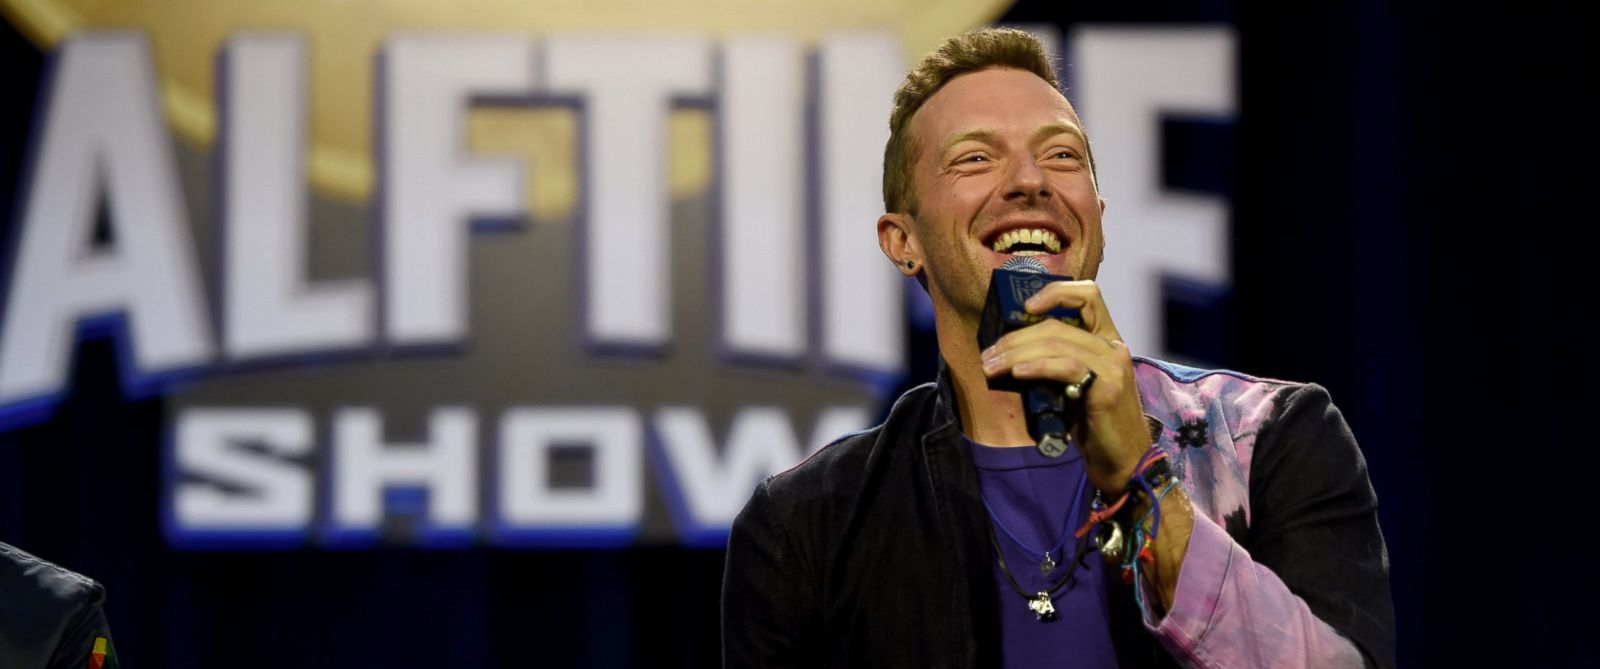 PHOTO: Chris Martin of Coldplay speaks at the Pepsi Super Bowl Halftime Press Conference on Feb. 4, 2016 at the Moscone Convention Center in San Francisco.